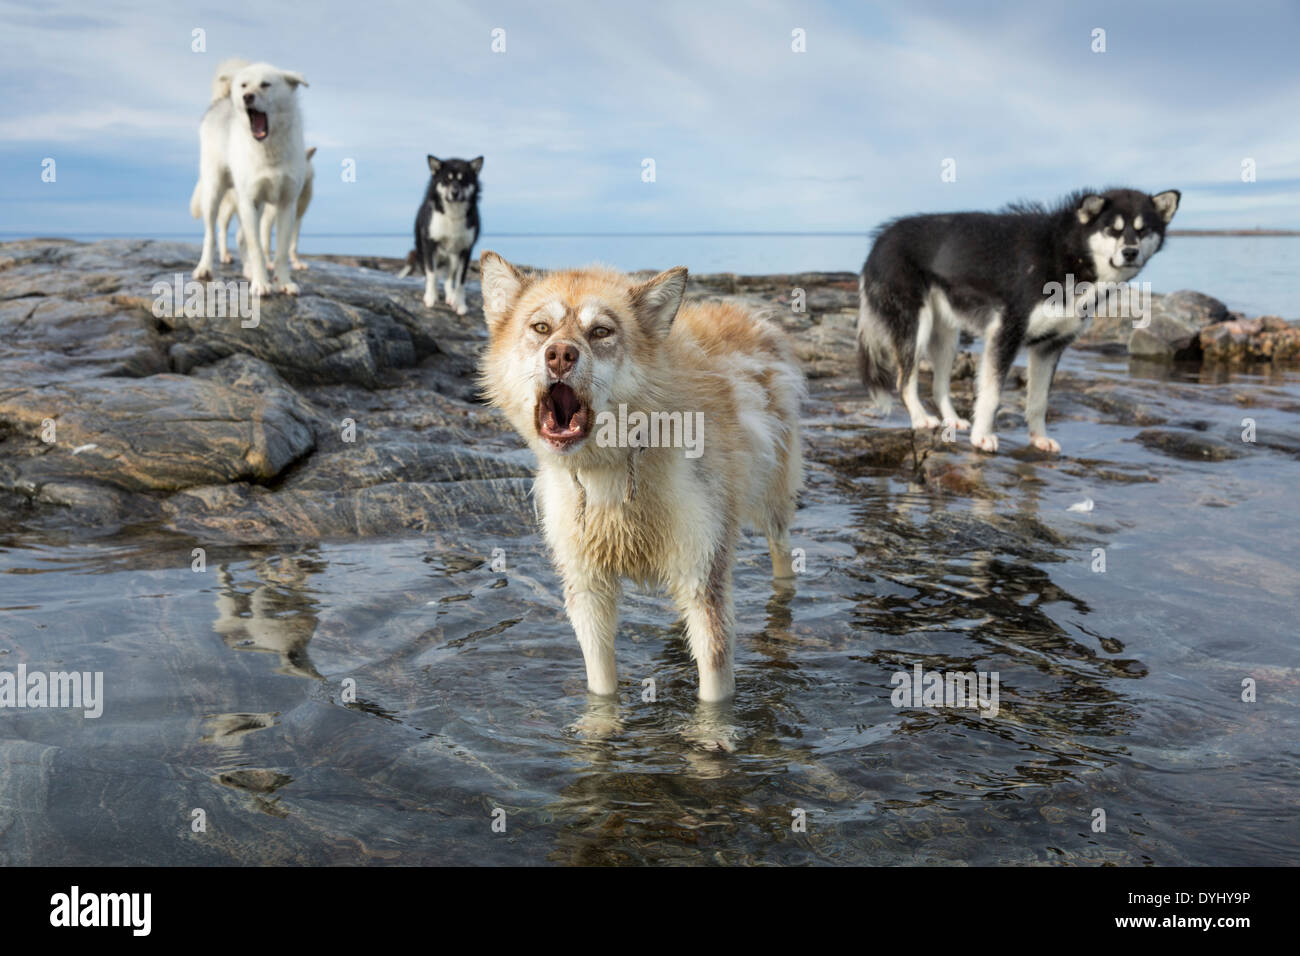 Canada, Nunavut Territory, Repulse Bay, Sled dogs standing along shore on Harbour Islands beach - Stock Image